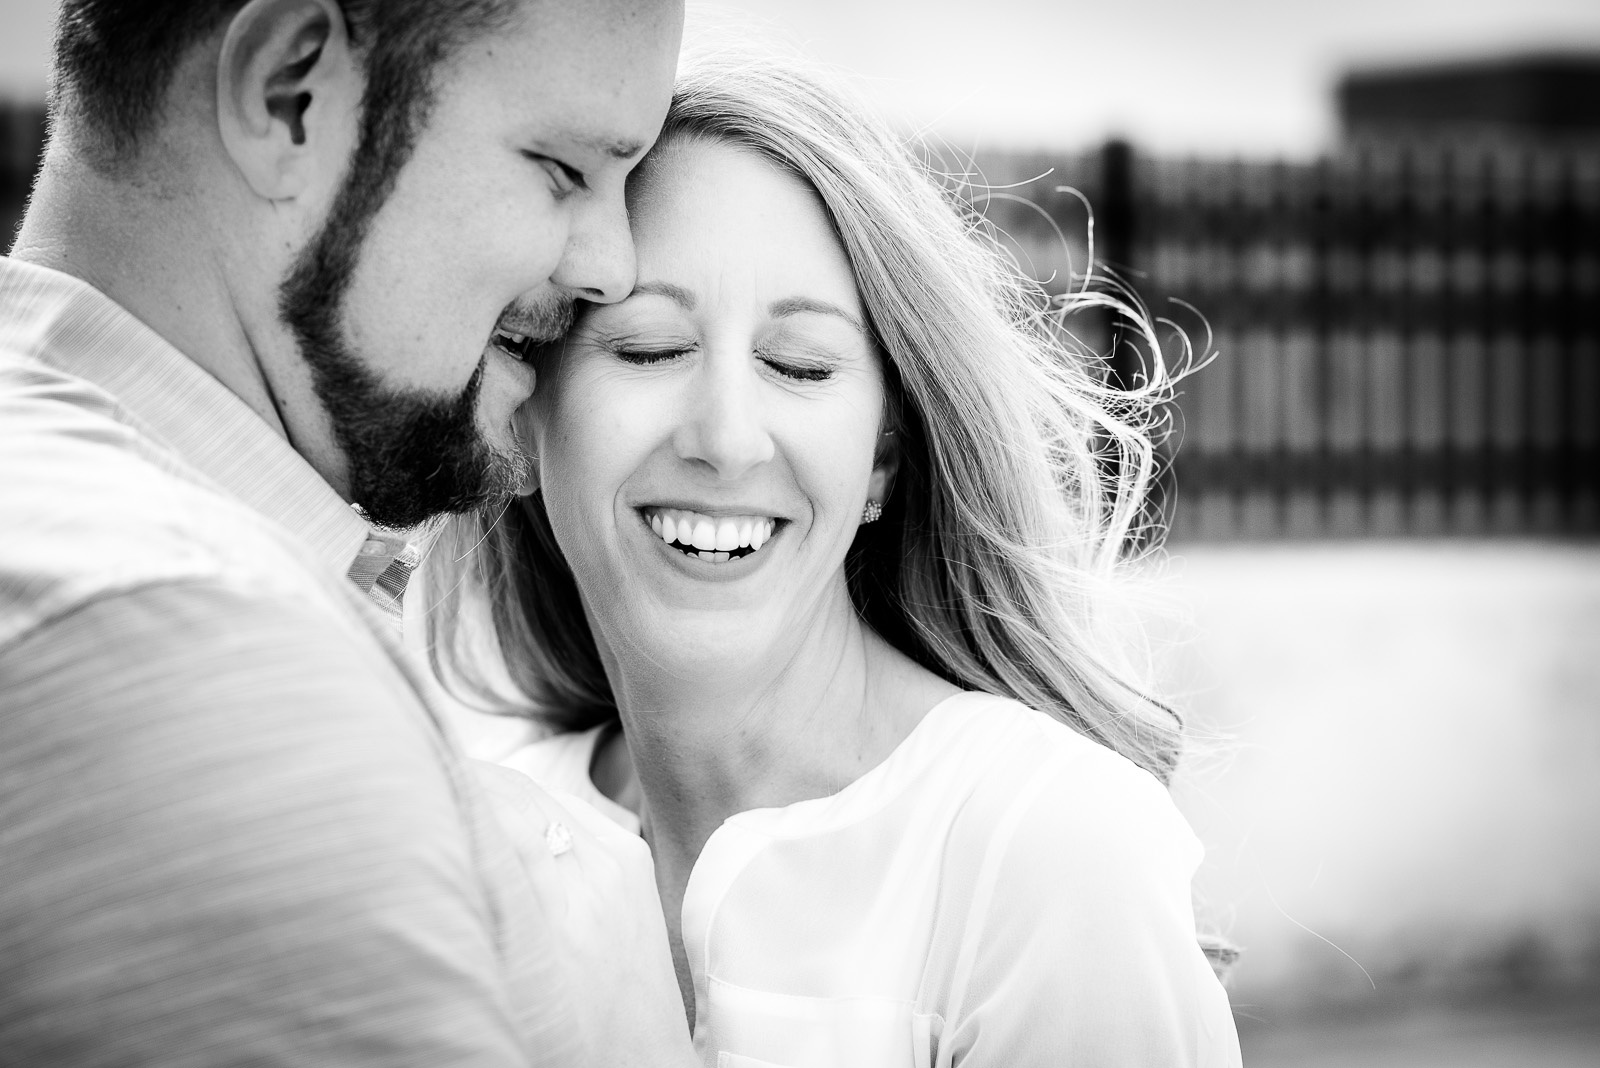 Eric_and_Christy_Photography_Blog_Kelly_Matt_Engagement-22